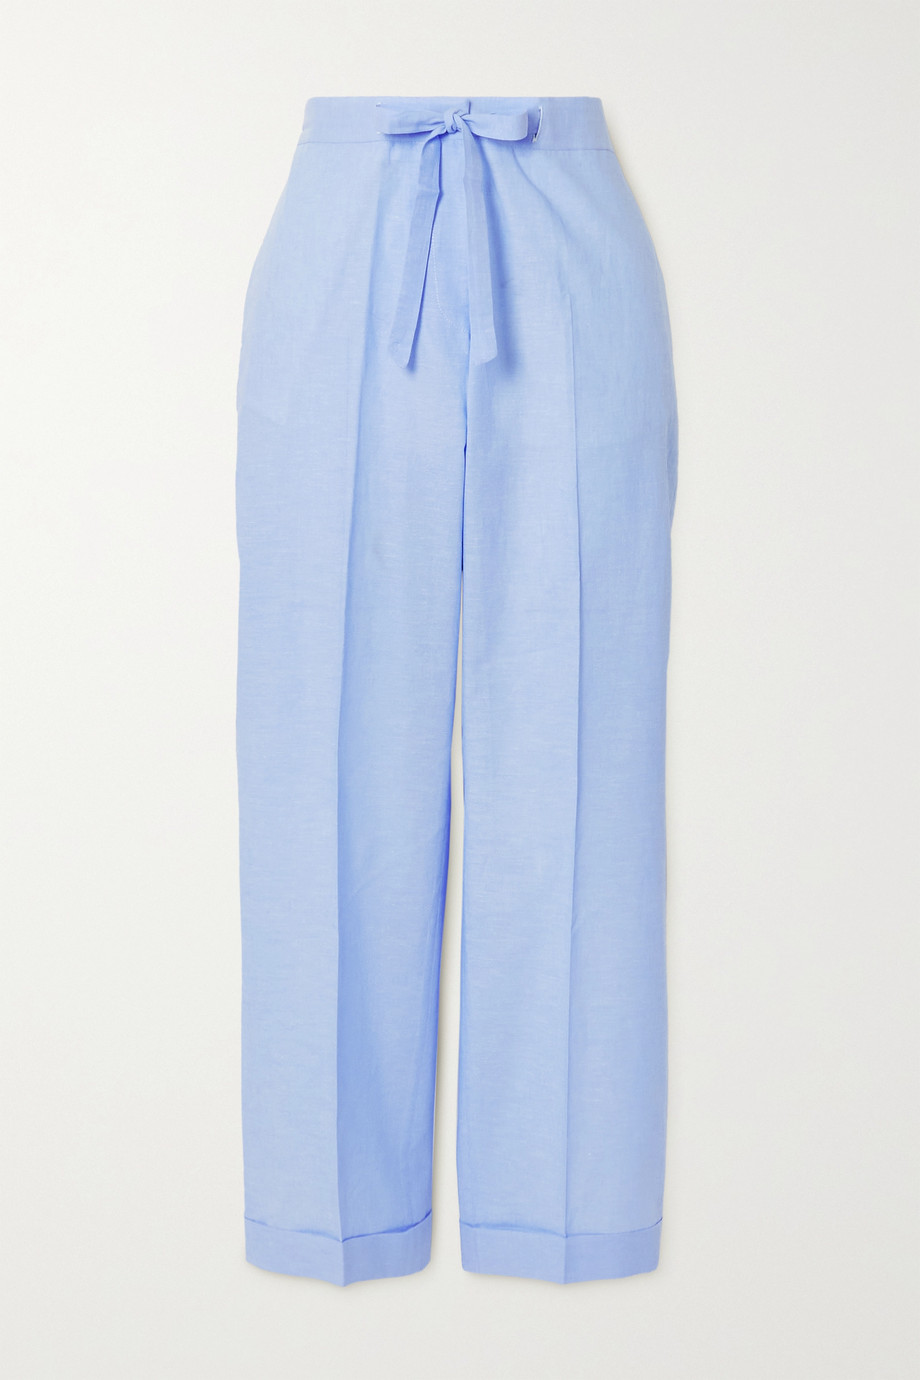 OFFICINE GÉNÉRALE Miranda cotton and linen-blend straight-leg pants